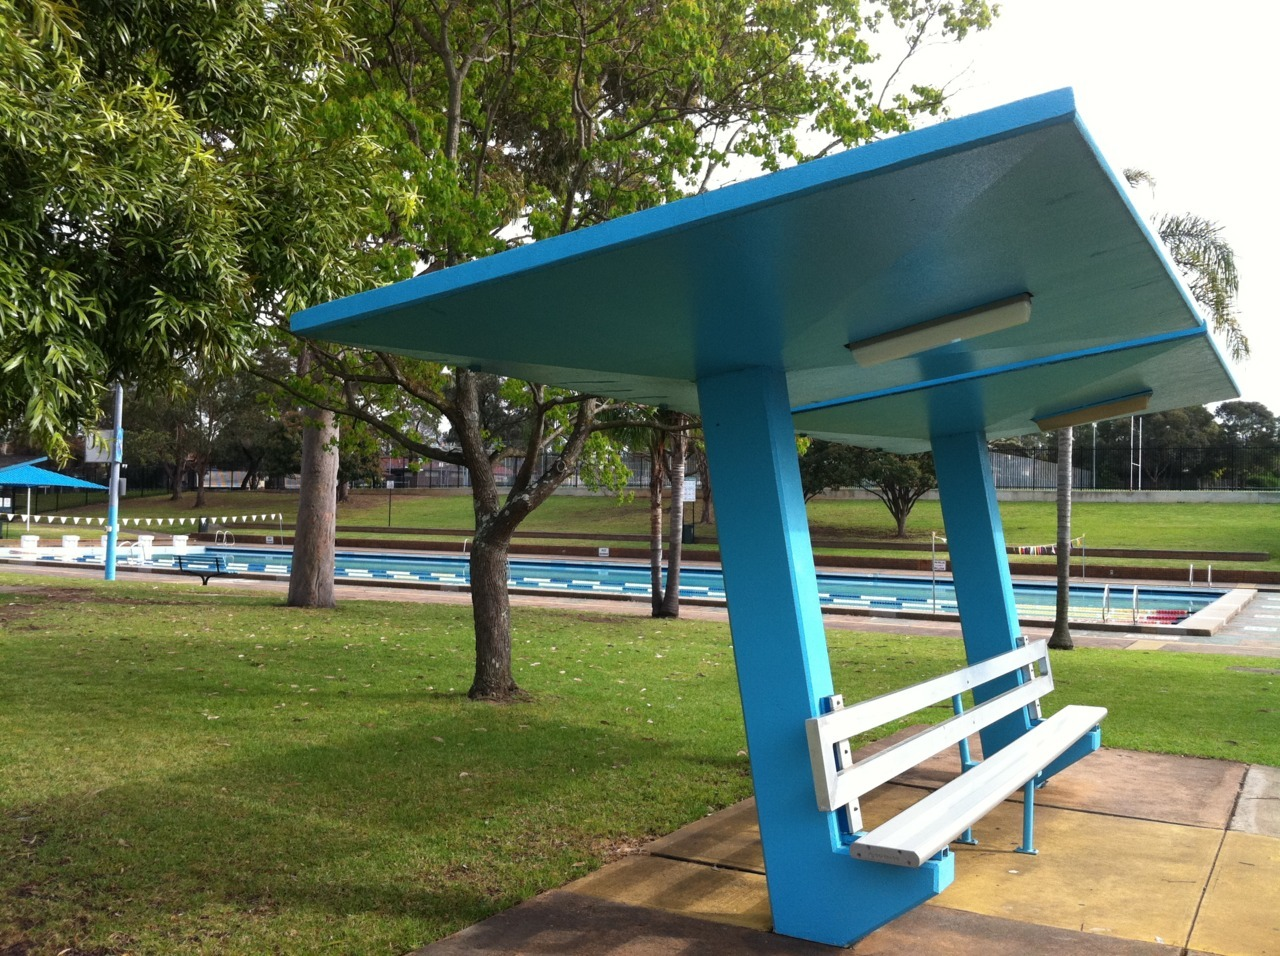 Merrylands Heated Swim Centre8am Monday. $4.50 Entry. What